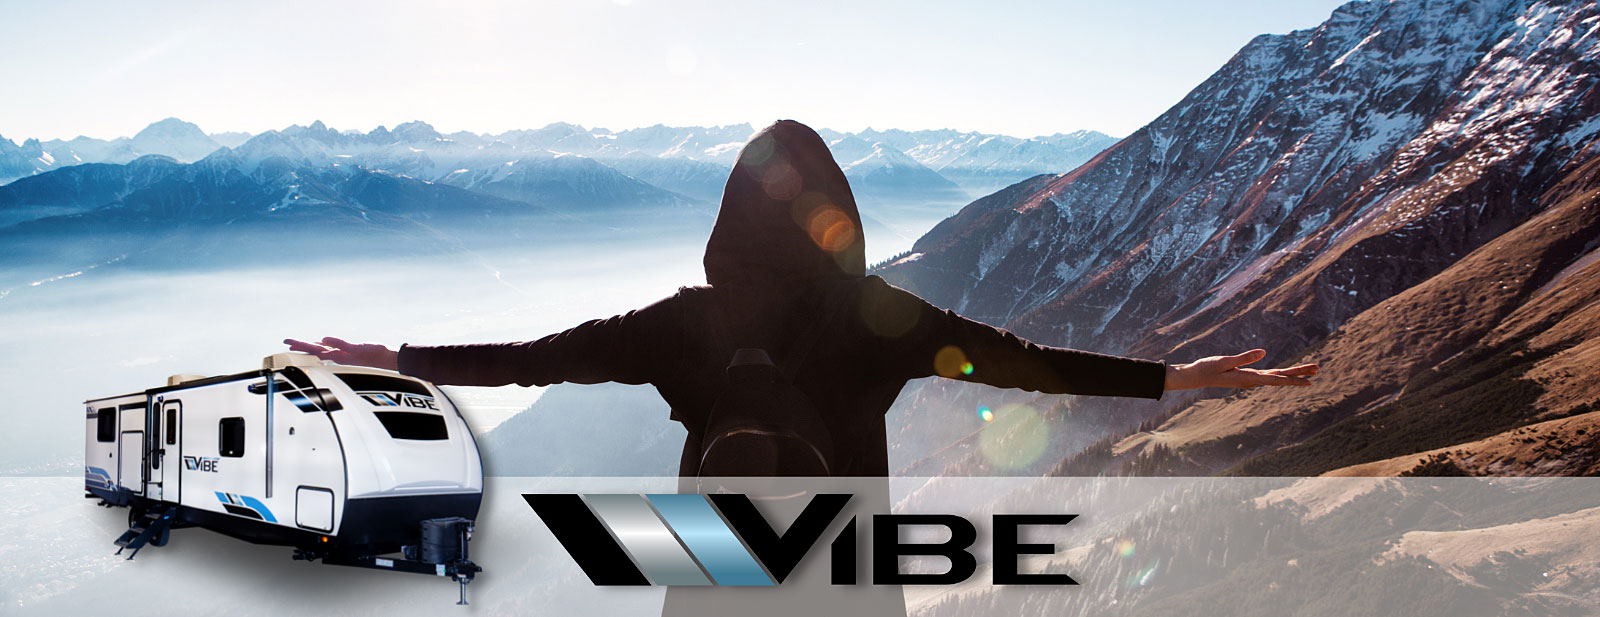 Vibe | Forest River RV - Manufacturer of Travel Trailers - Fifth